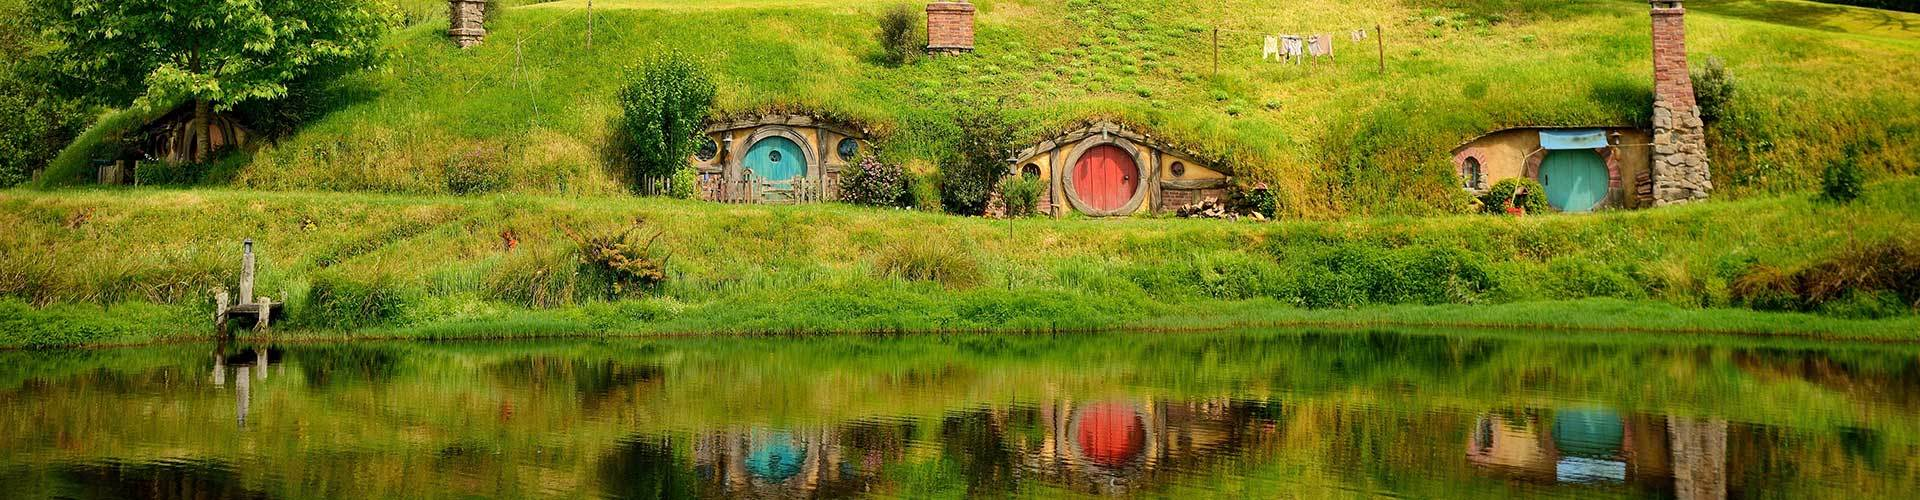 Lord of the Rings and the Hobbit in New Zealand